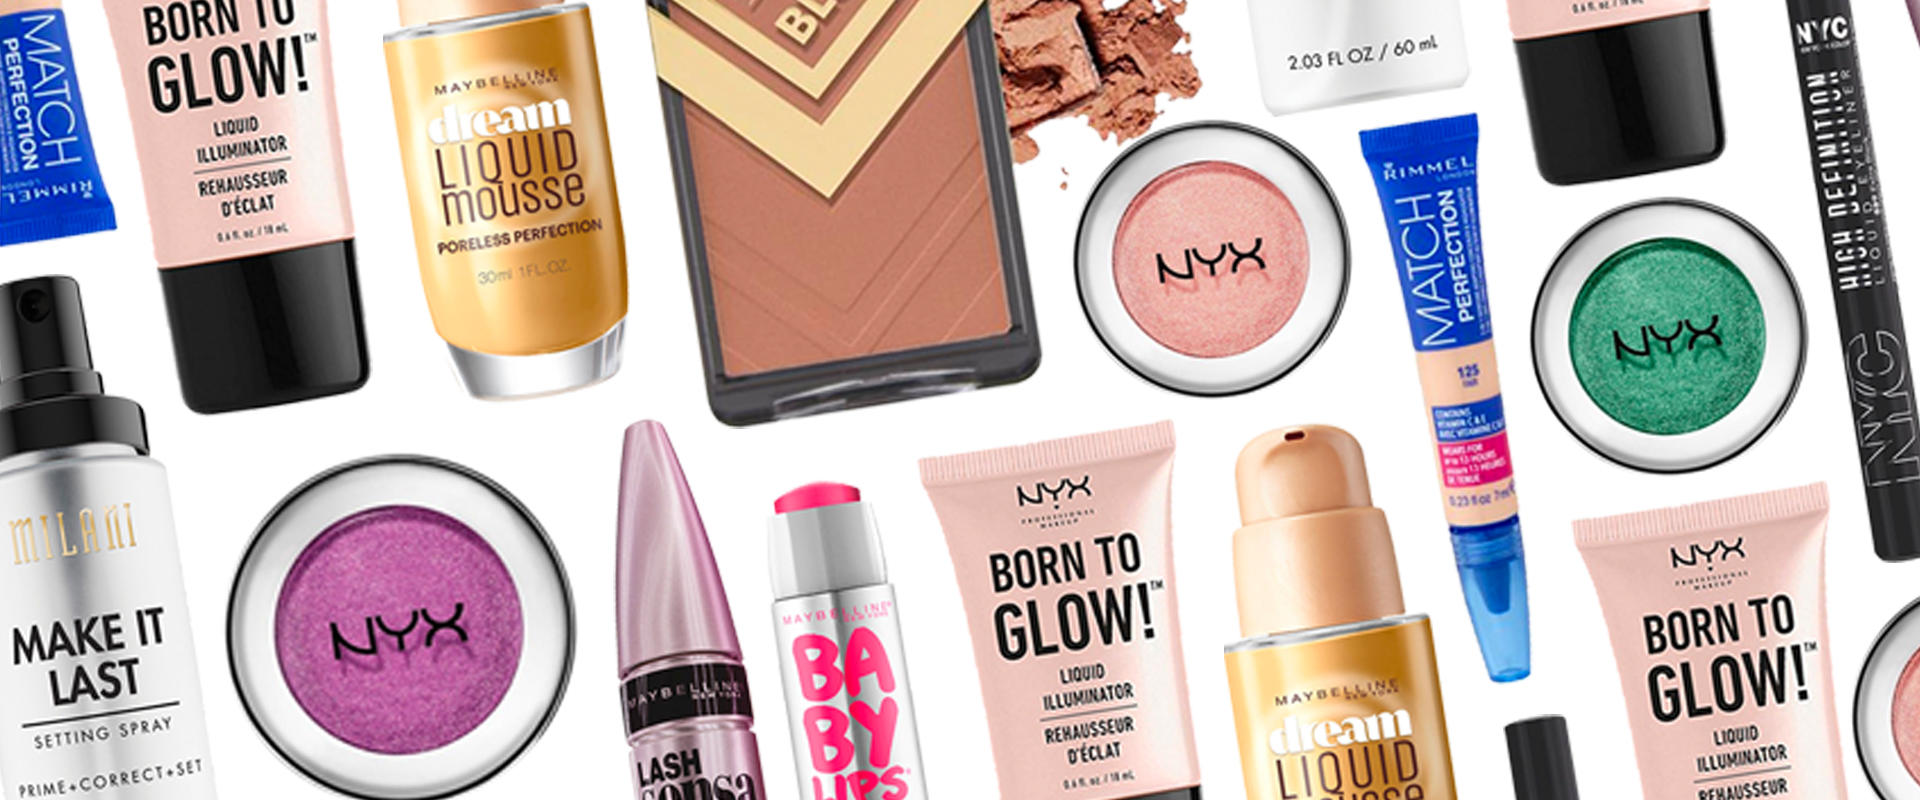 12 Beauty Bloggers' Favorite Drugstore Makeup Under $10